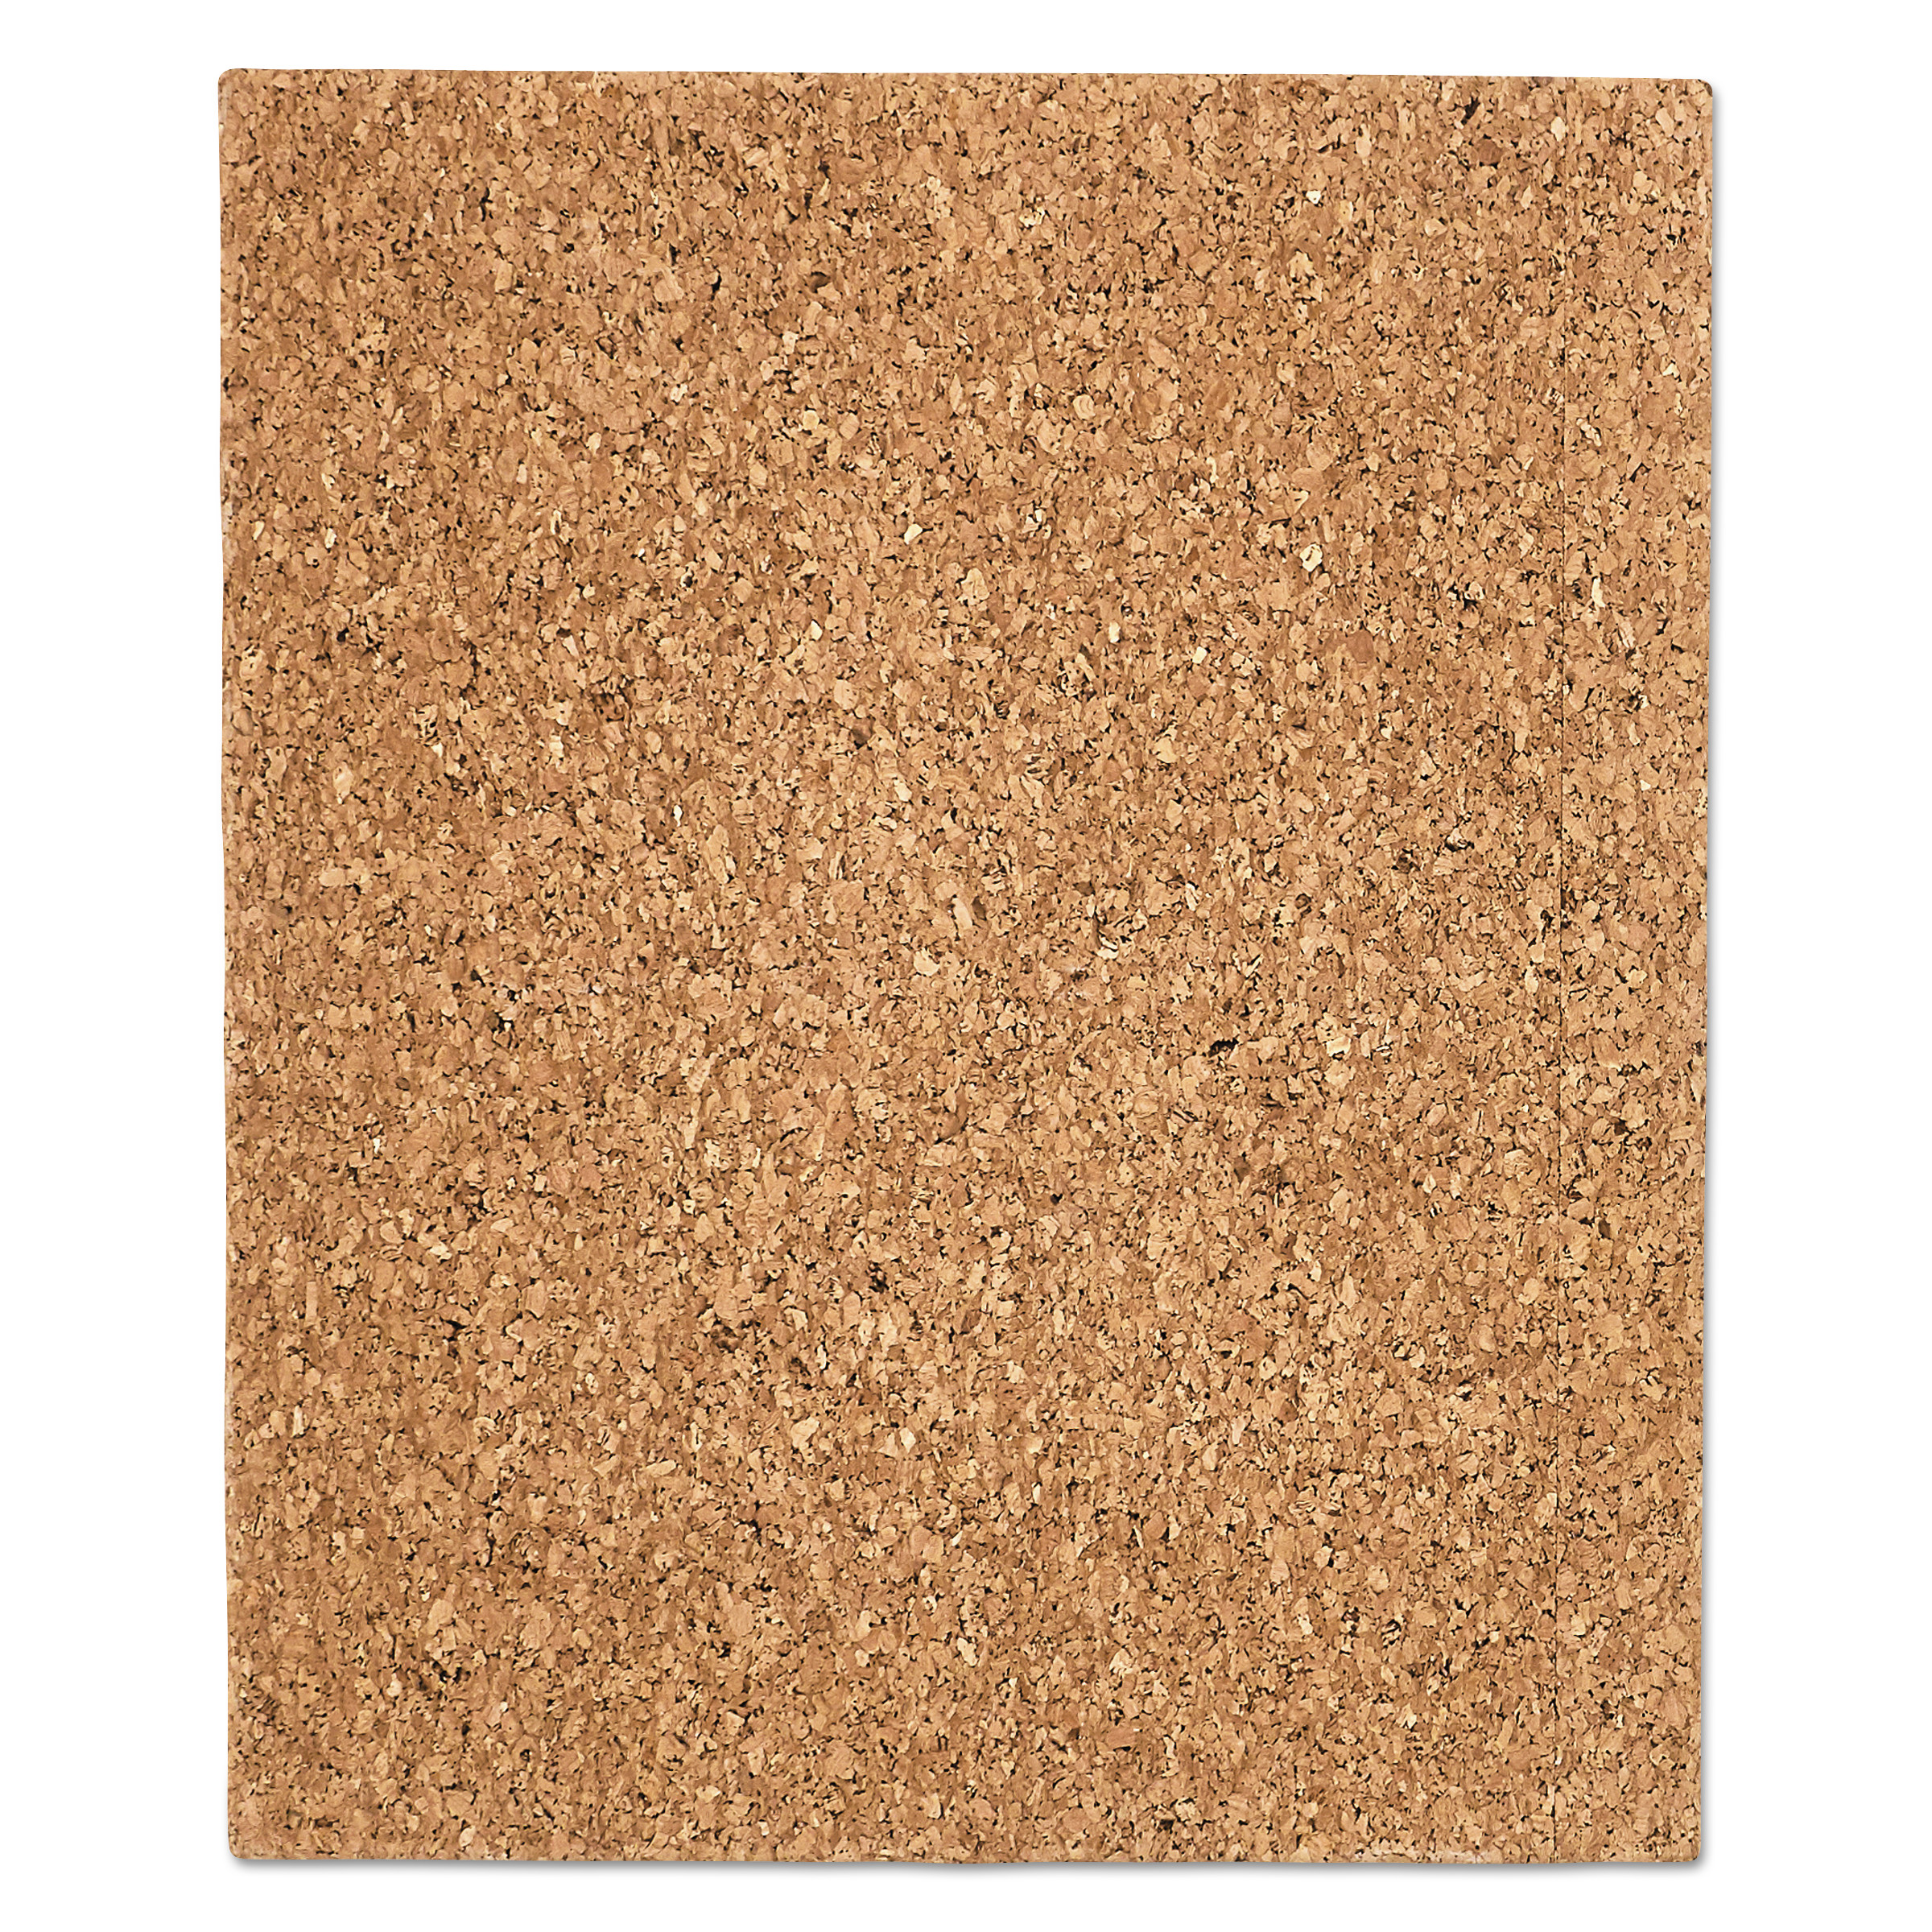 "Iceberg Designer Cork Bulletin Board, 20"" x 24"", Natural -ICE35014"